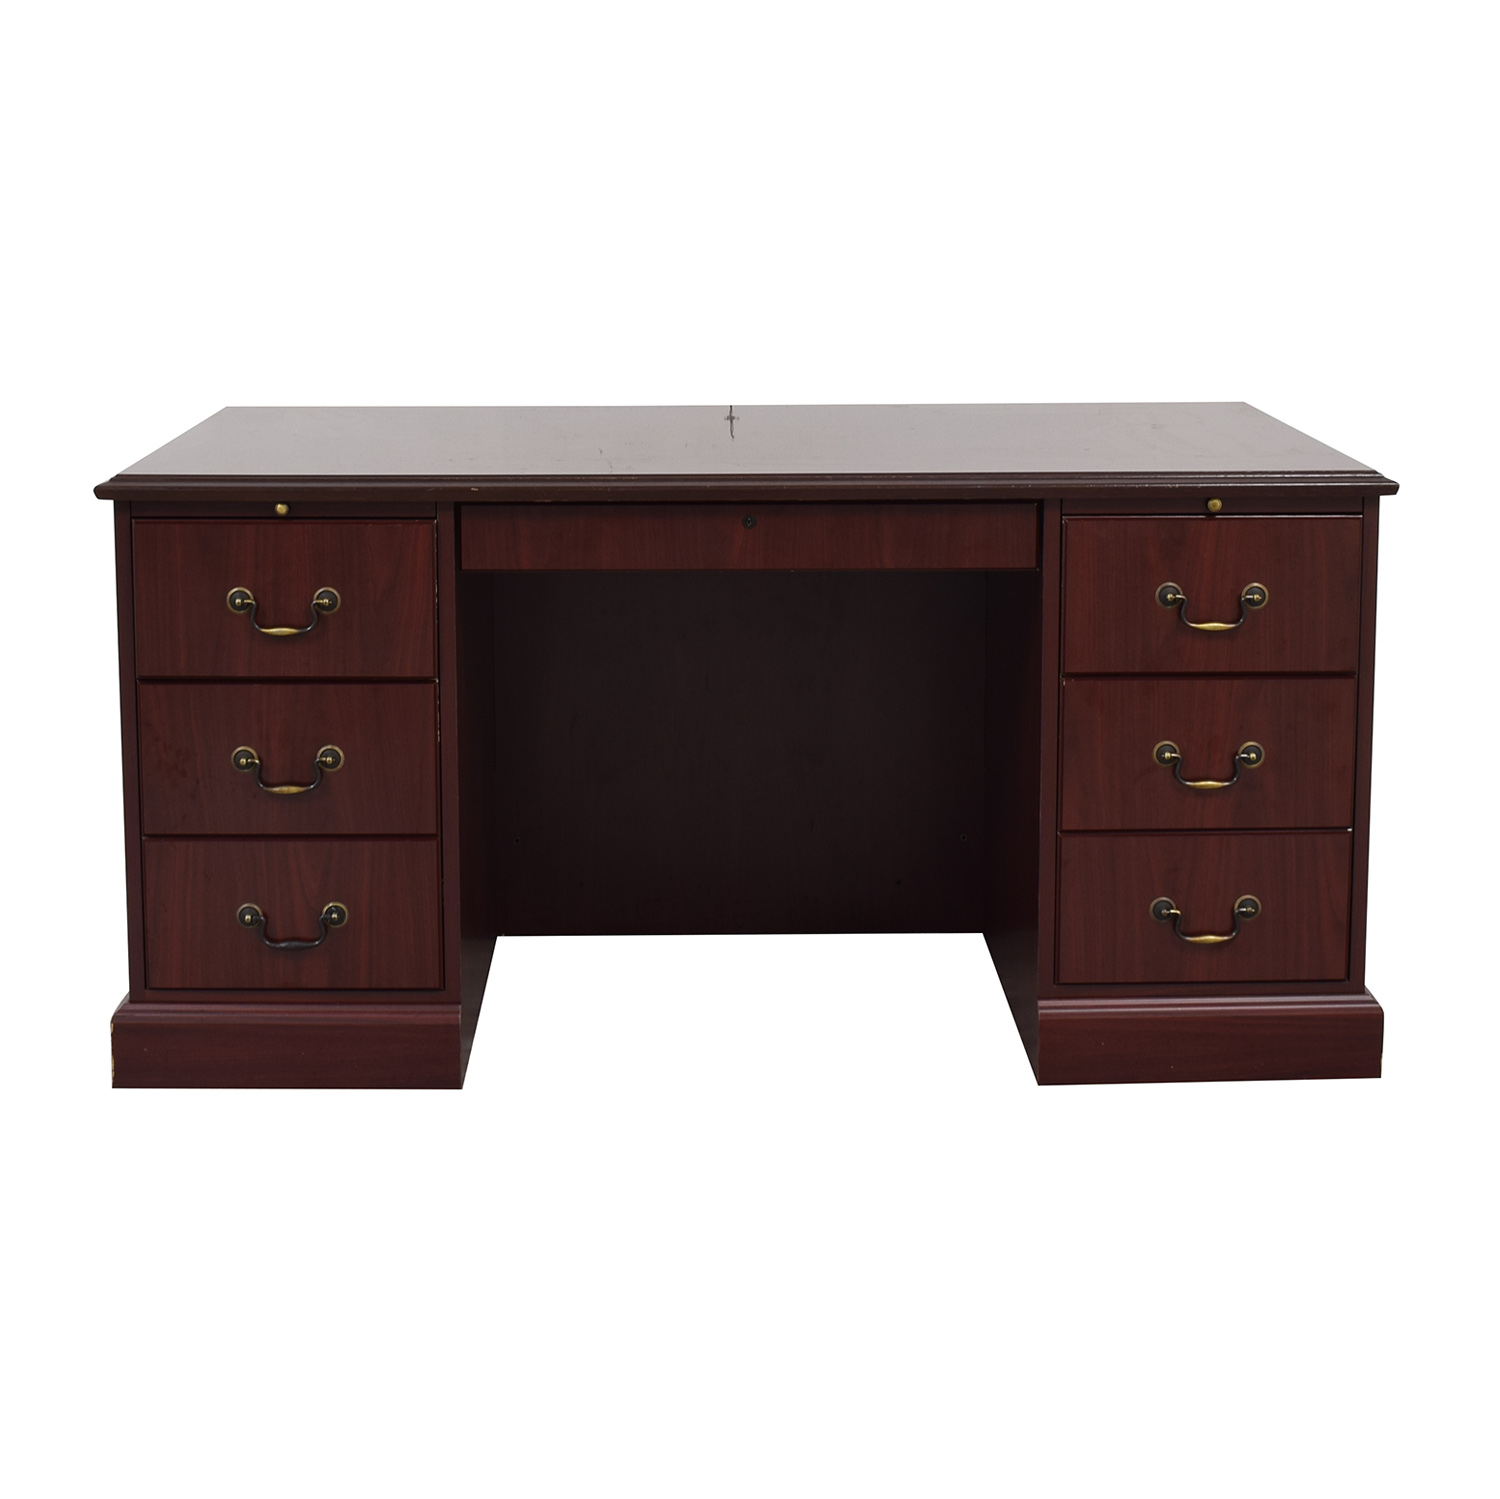 Hon Hon Five-Drawer Desk Tables